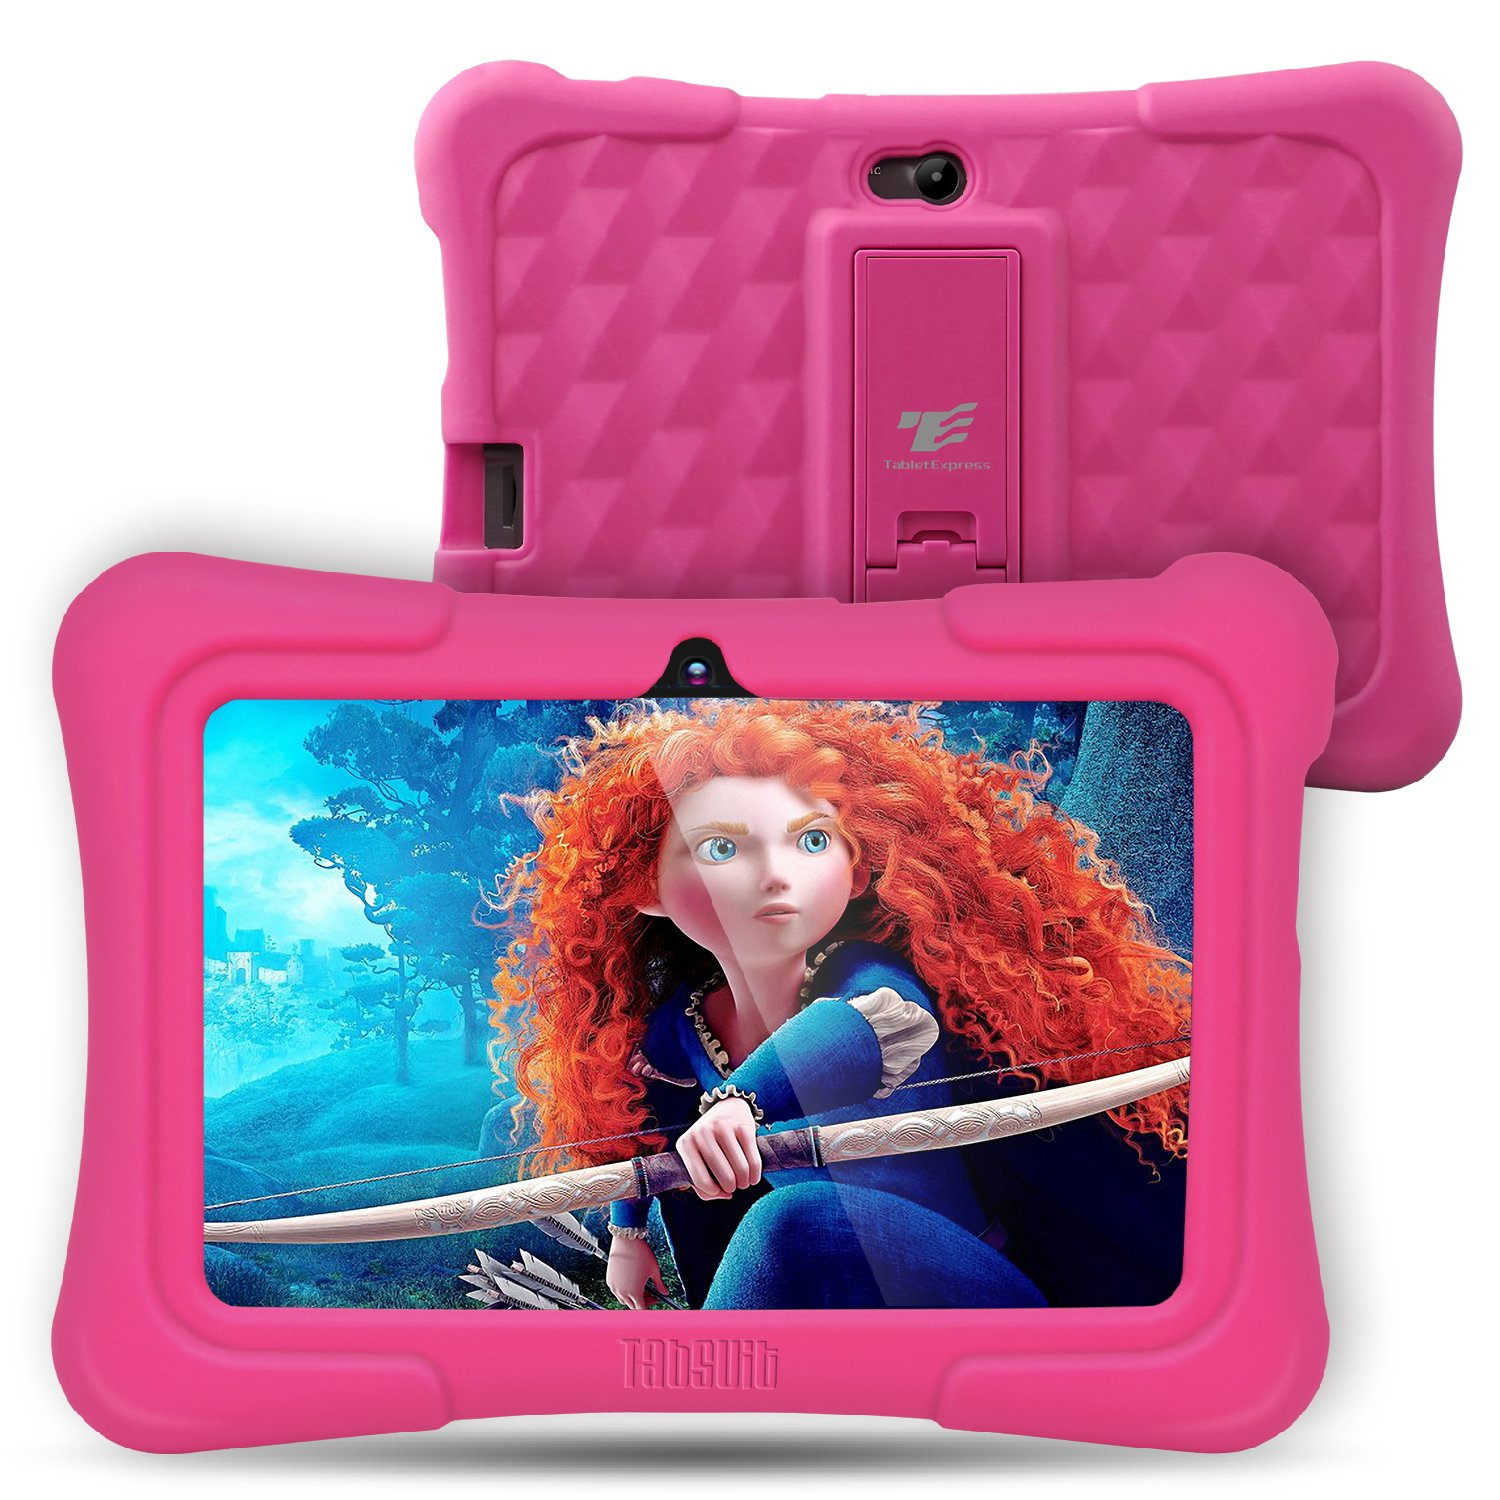 The picture of a dragon touch y88 plus kids tablet.